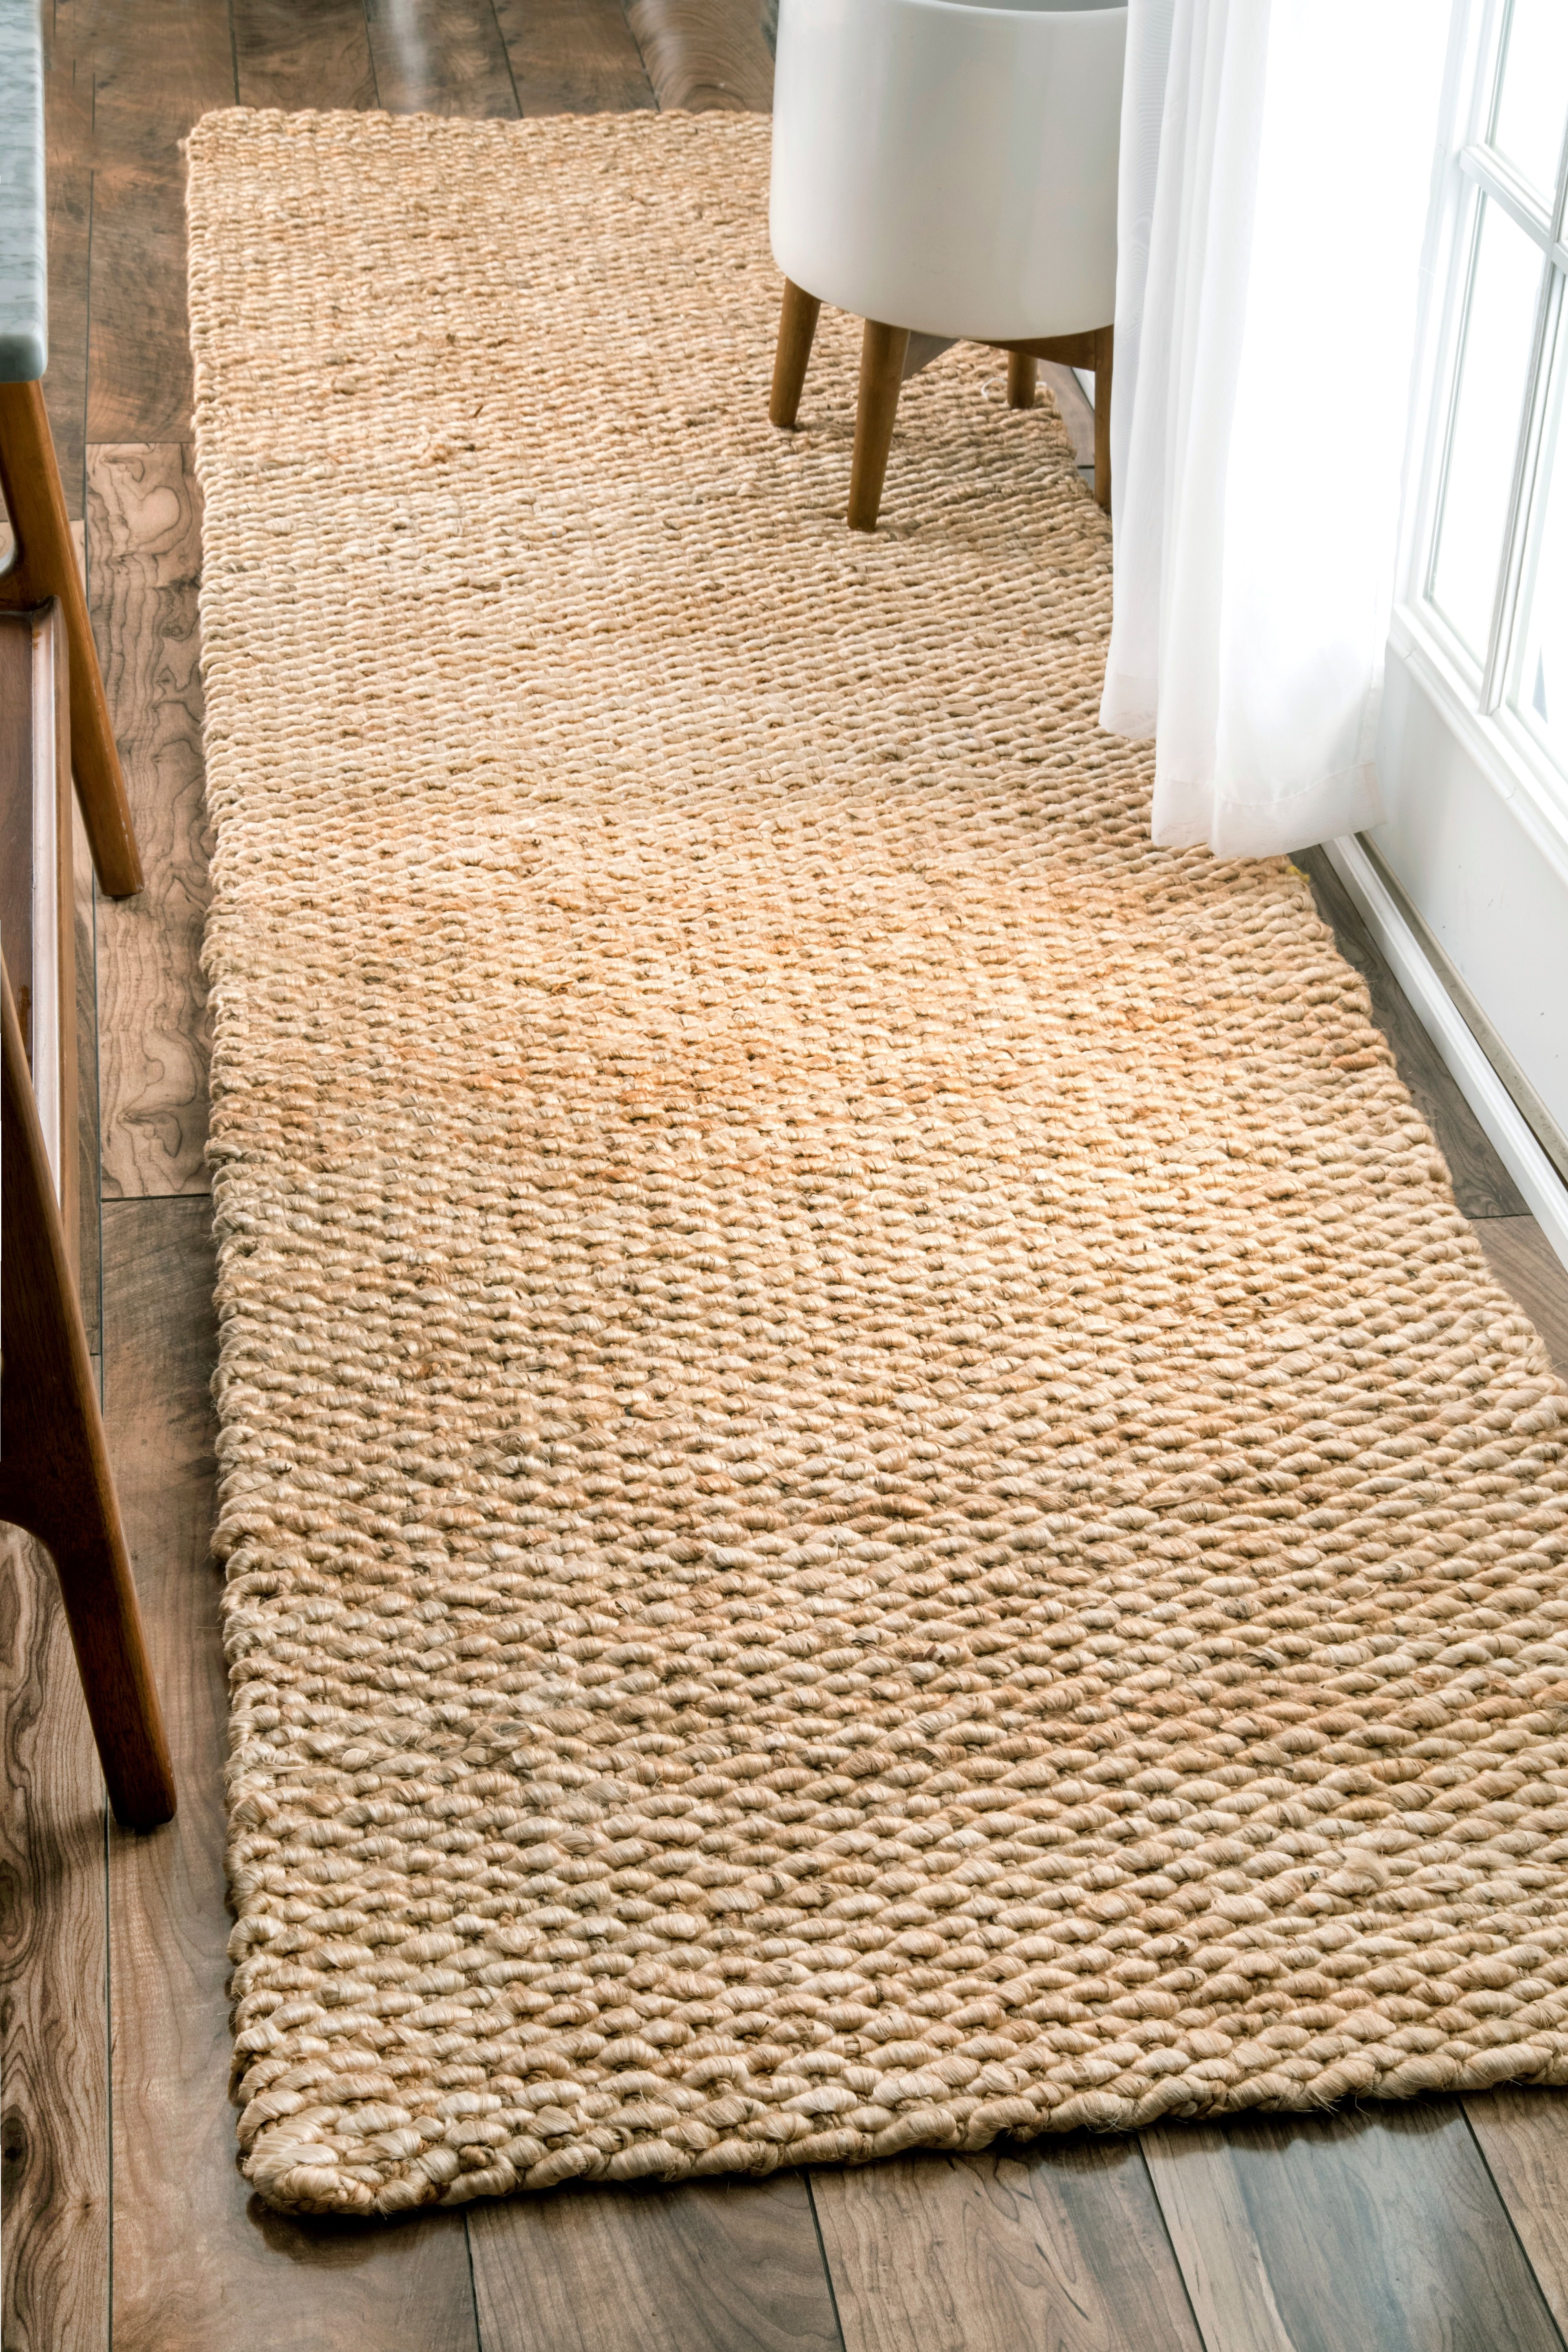 Bring The Rustic And Natural Look To Your E With This Shade Jute Rug